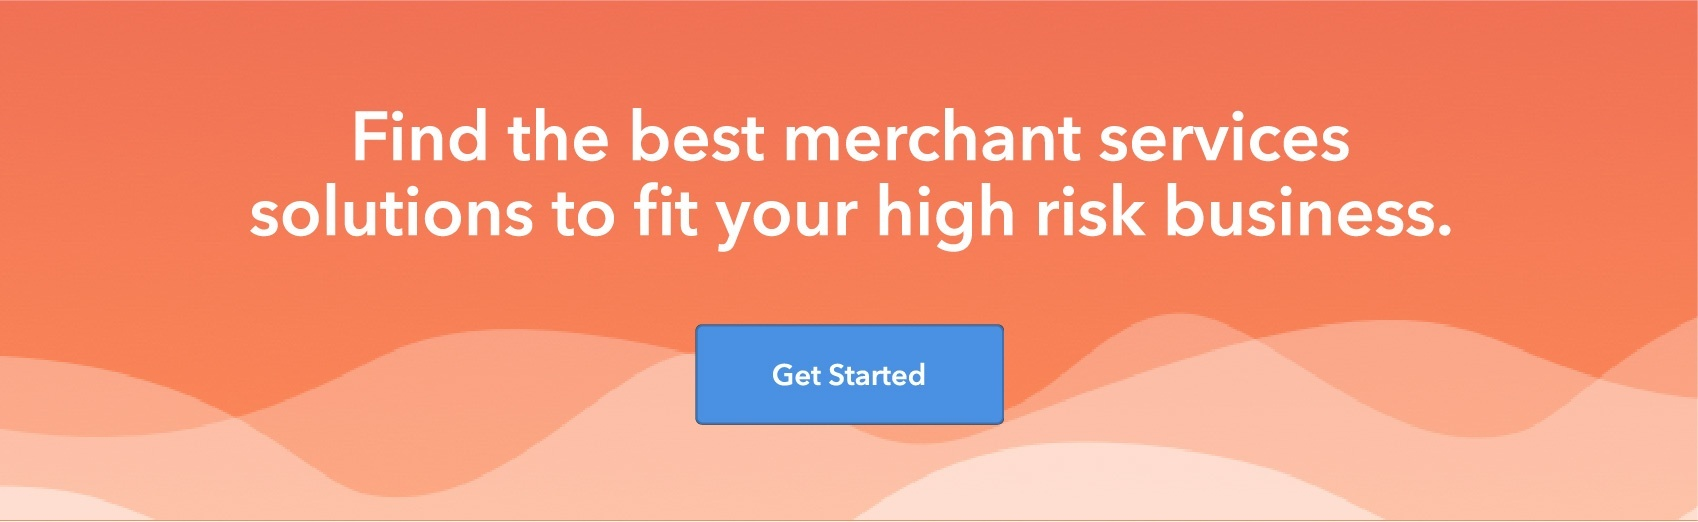 Find the best merchant services solutions to fit your high risk business. Get Started.